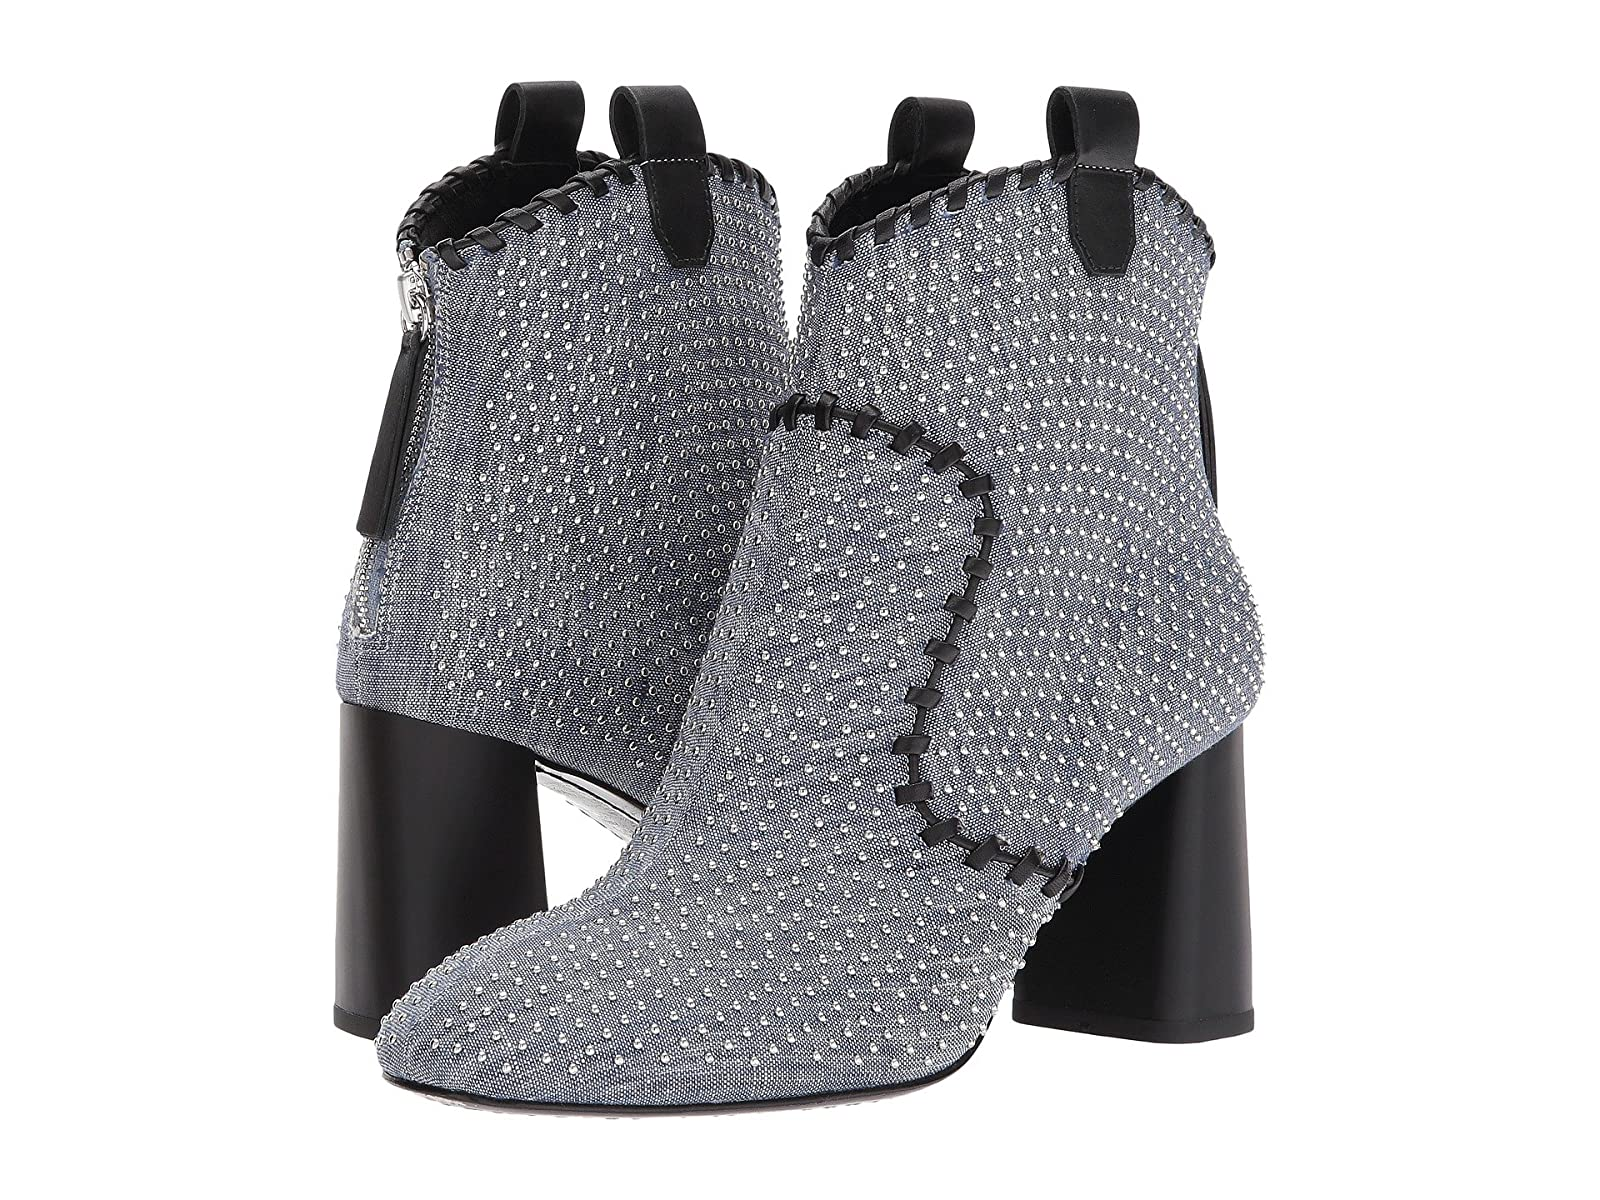 Alice + Olivia Myra StudsCheap and distinctive eye-catching shoes